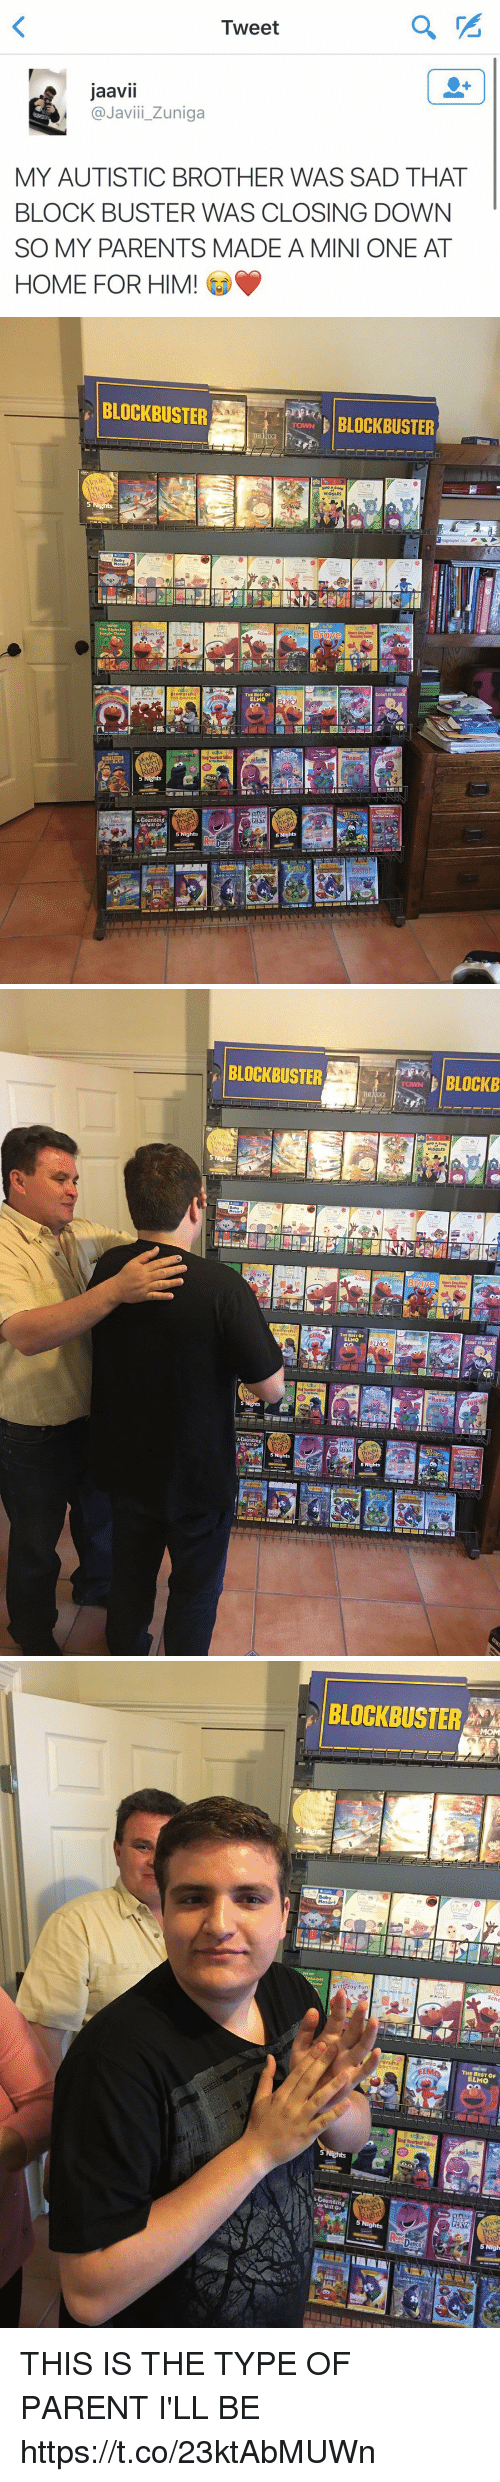 Birthday, Blockbuster, and Parents: Tweet  Jaavil  @Javi i Zuniga  MY AUTISTIC BROTHER WAS SAD THAT  BLOCKBUSTER WAS CLOSING DOWN  SO MY PARENTS MADE A MINI ONE AT  HOME FOR HIM!   S  BLOCKBUSTER  Counting  5 Nights  5 Nights  BLOCKBUSTER   BLOCKBUSTER  Acounting   BLOCKBUSTER  Birthday Fun  Scho  THE BEST OF  iCou  5 Nigh  PLAY  5 Nigh THIS IS THE TYPE OF PARENT I'LL BE https://t.co/23ktAbMUWn